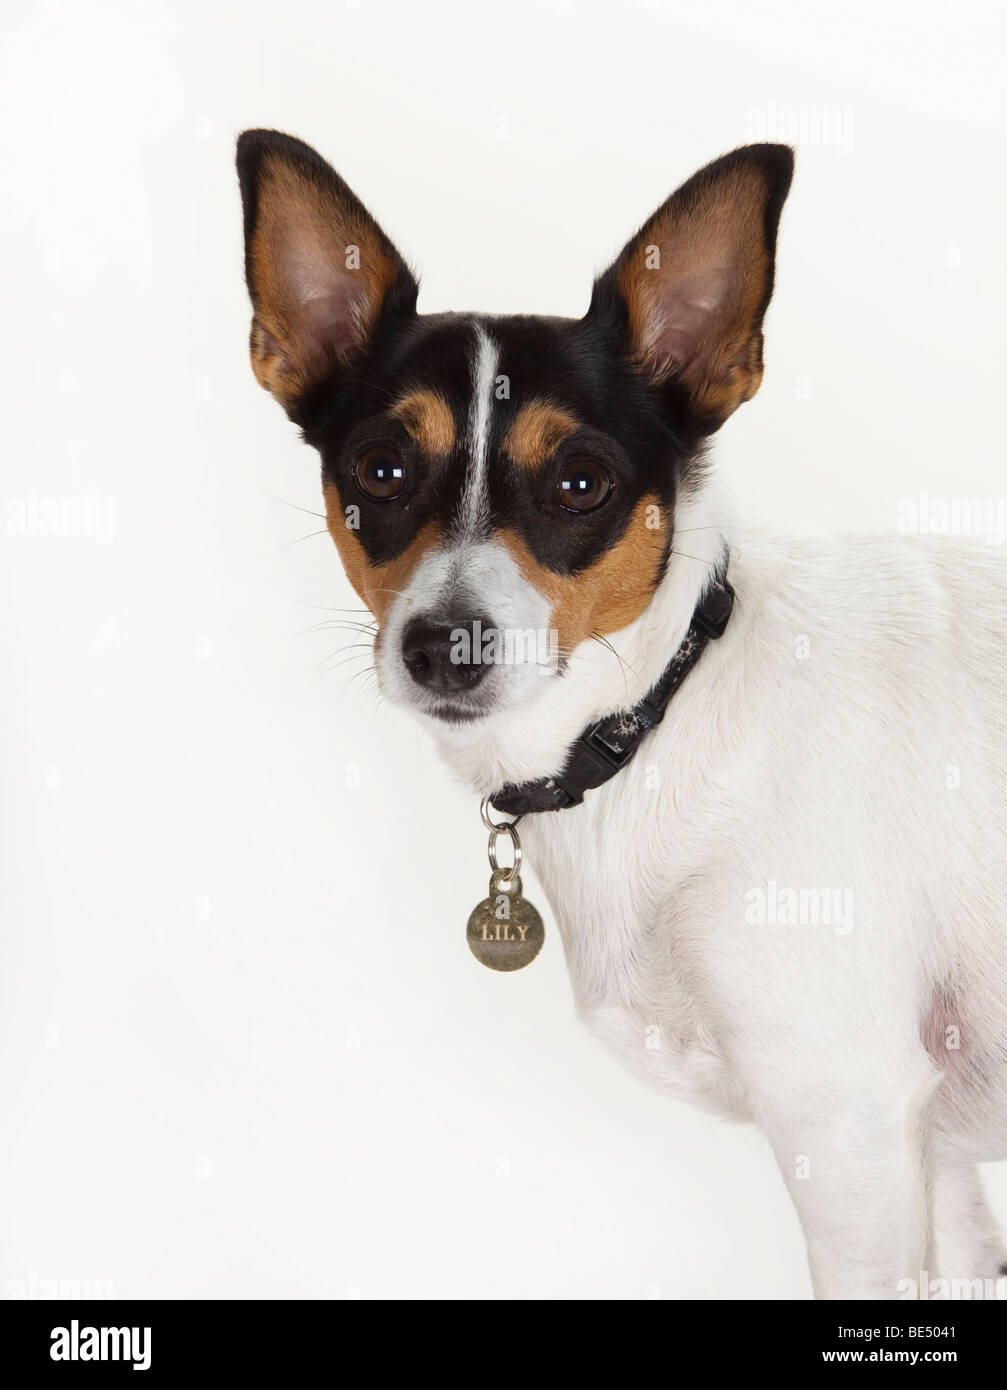 Jack Russell Terrier Female Pet Dog Bitch Ears Pricked Up